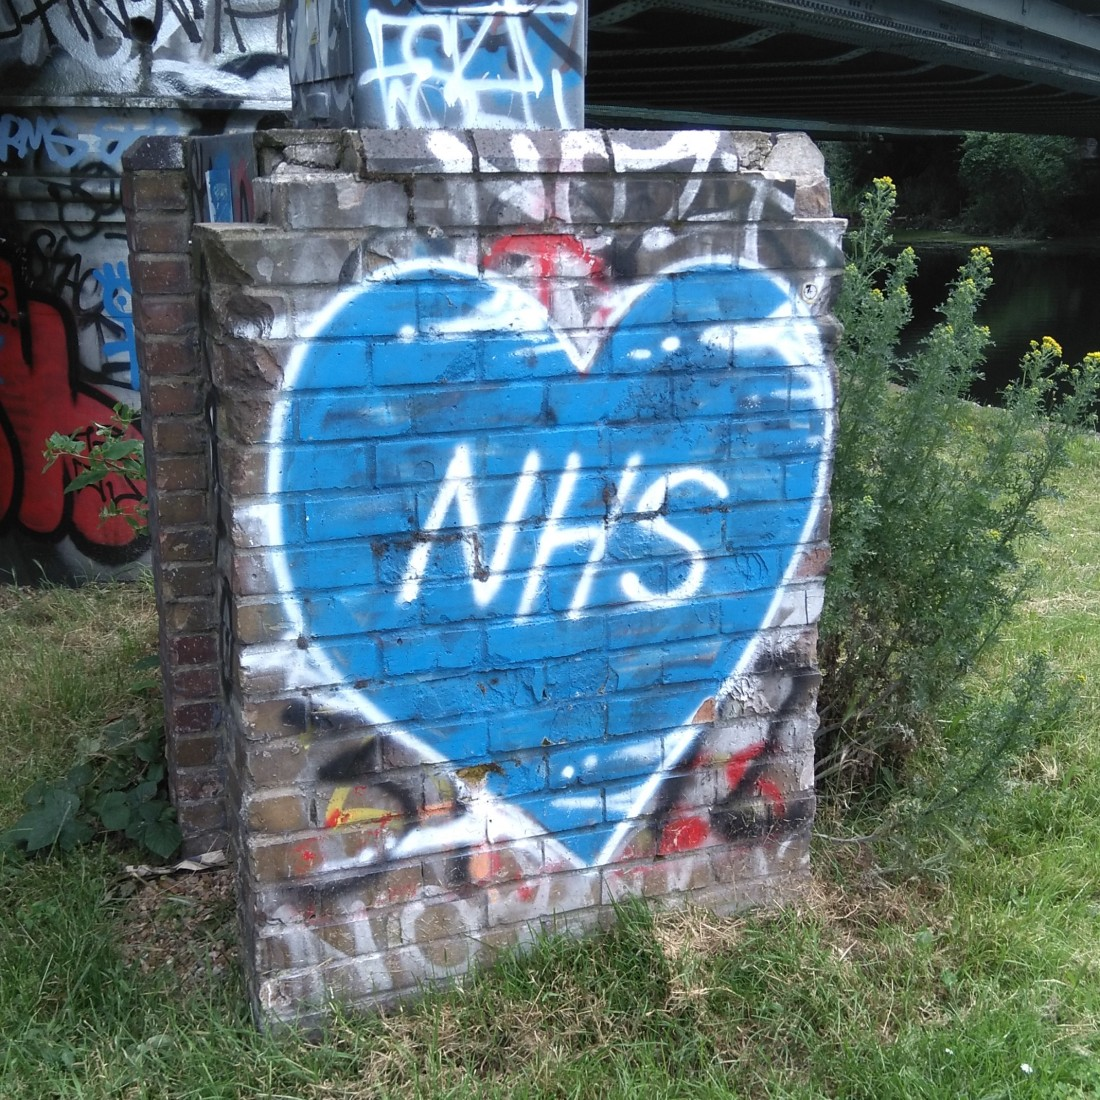 graffiti: NHS letters in a blue heart